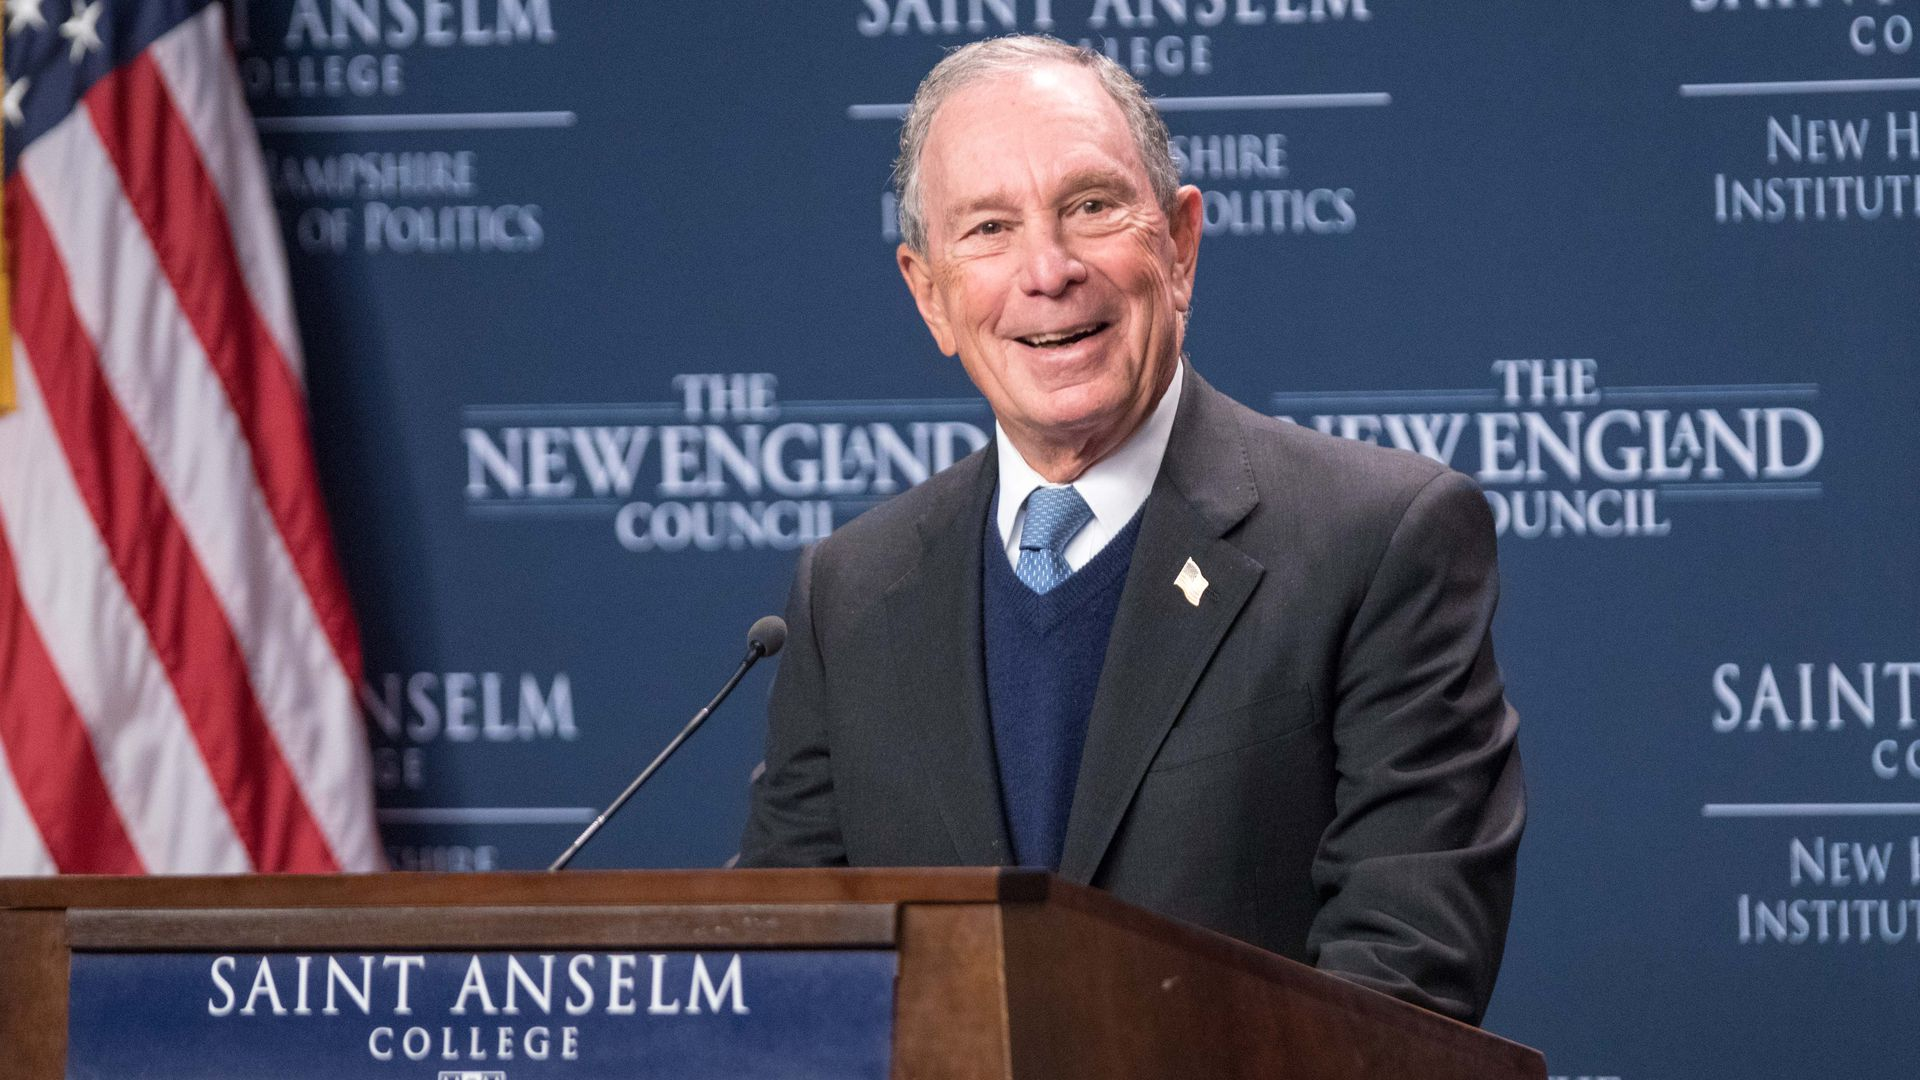 Former New York City Mayor Michael Bloomberg speaks about the climate at the New Hampshire Institute of Politics on January 29, 2019 in Manchester, New Hampshire.